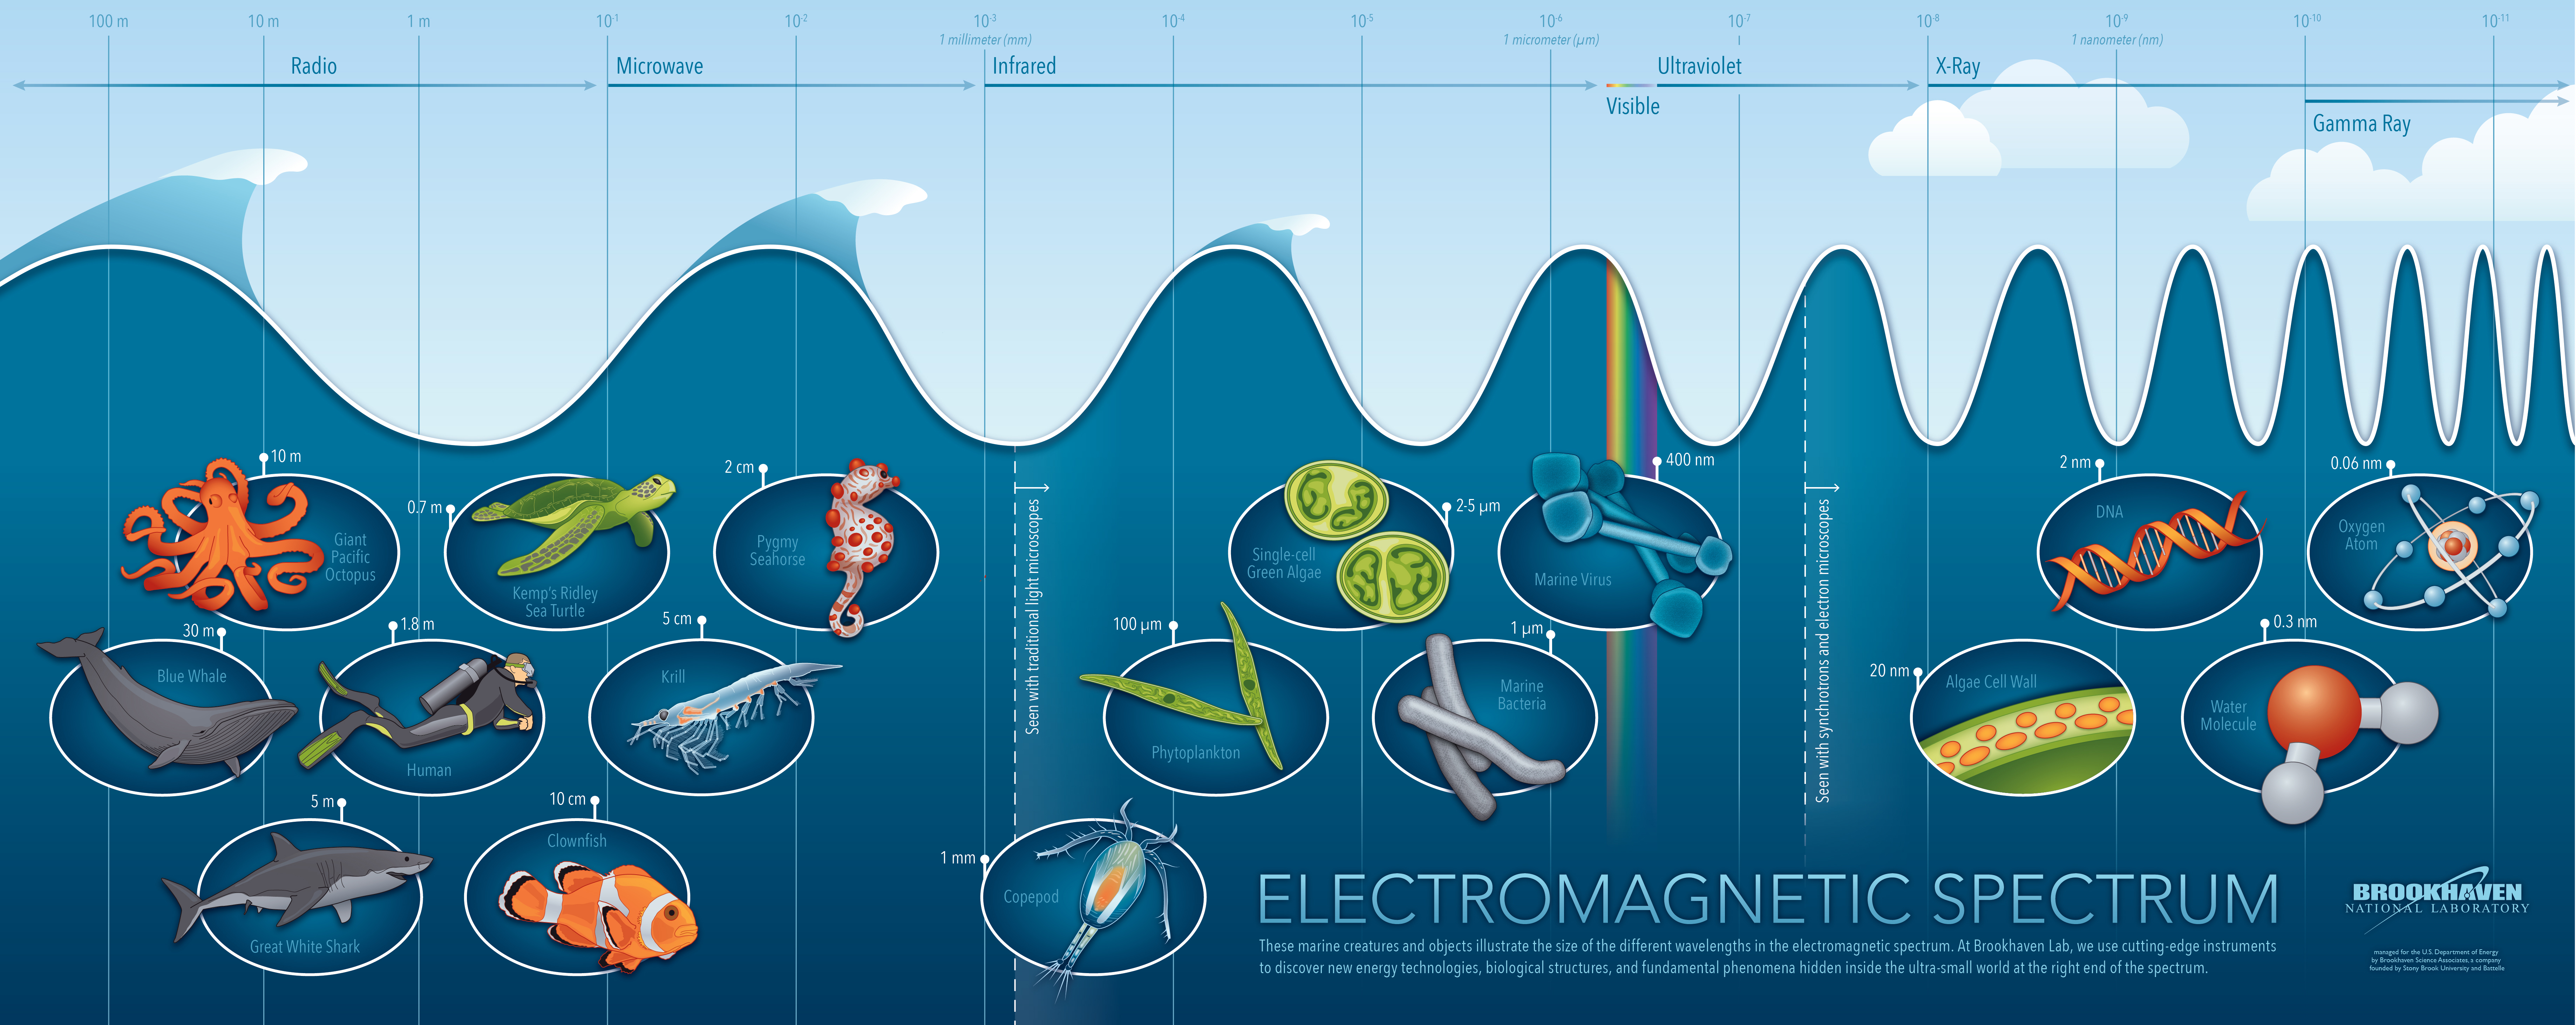 Into the Depths of the Electromagnetic Spectrum | BNL Newsroom